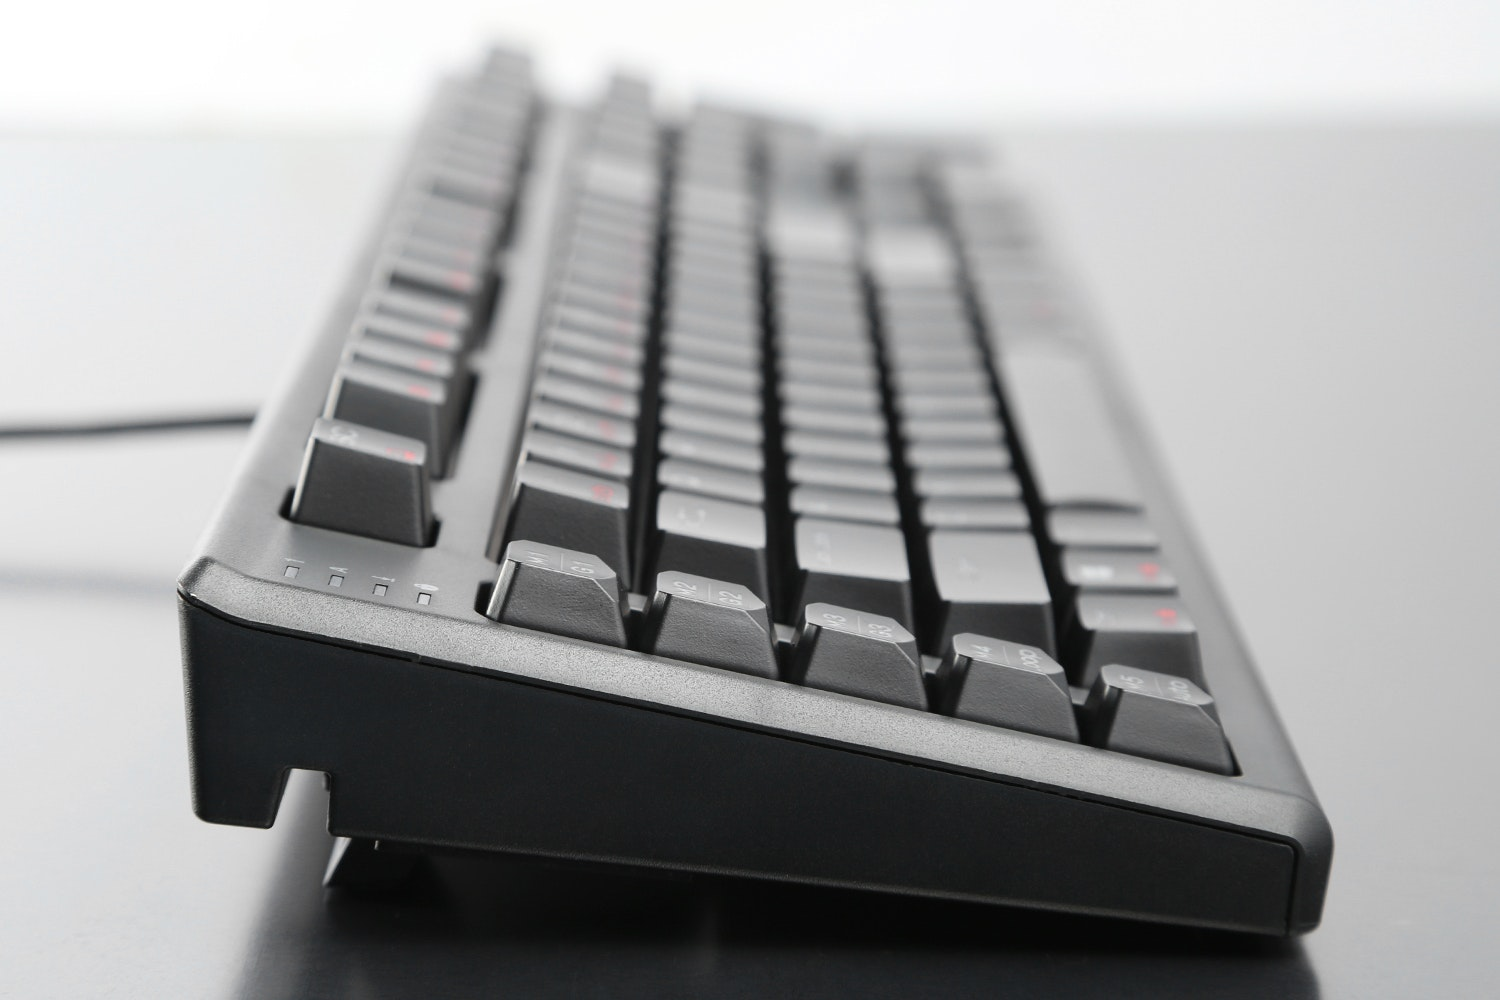 Z-Machine Cherry MX Fullsize Gaming Keyboard